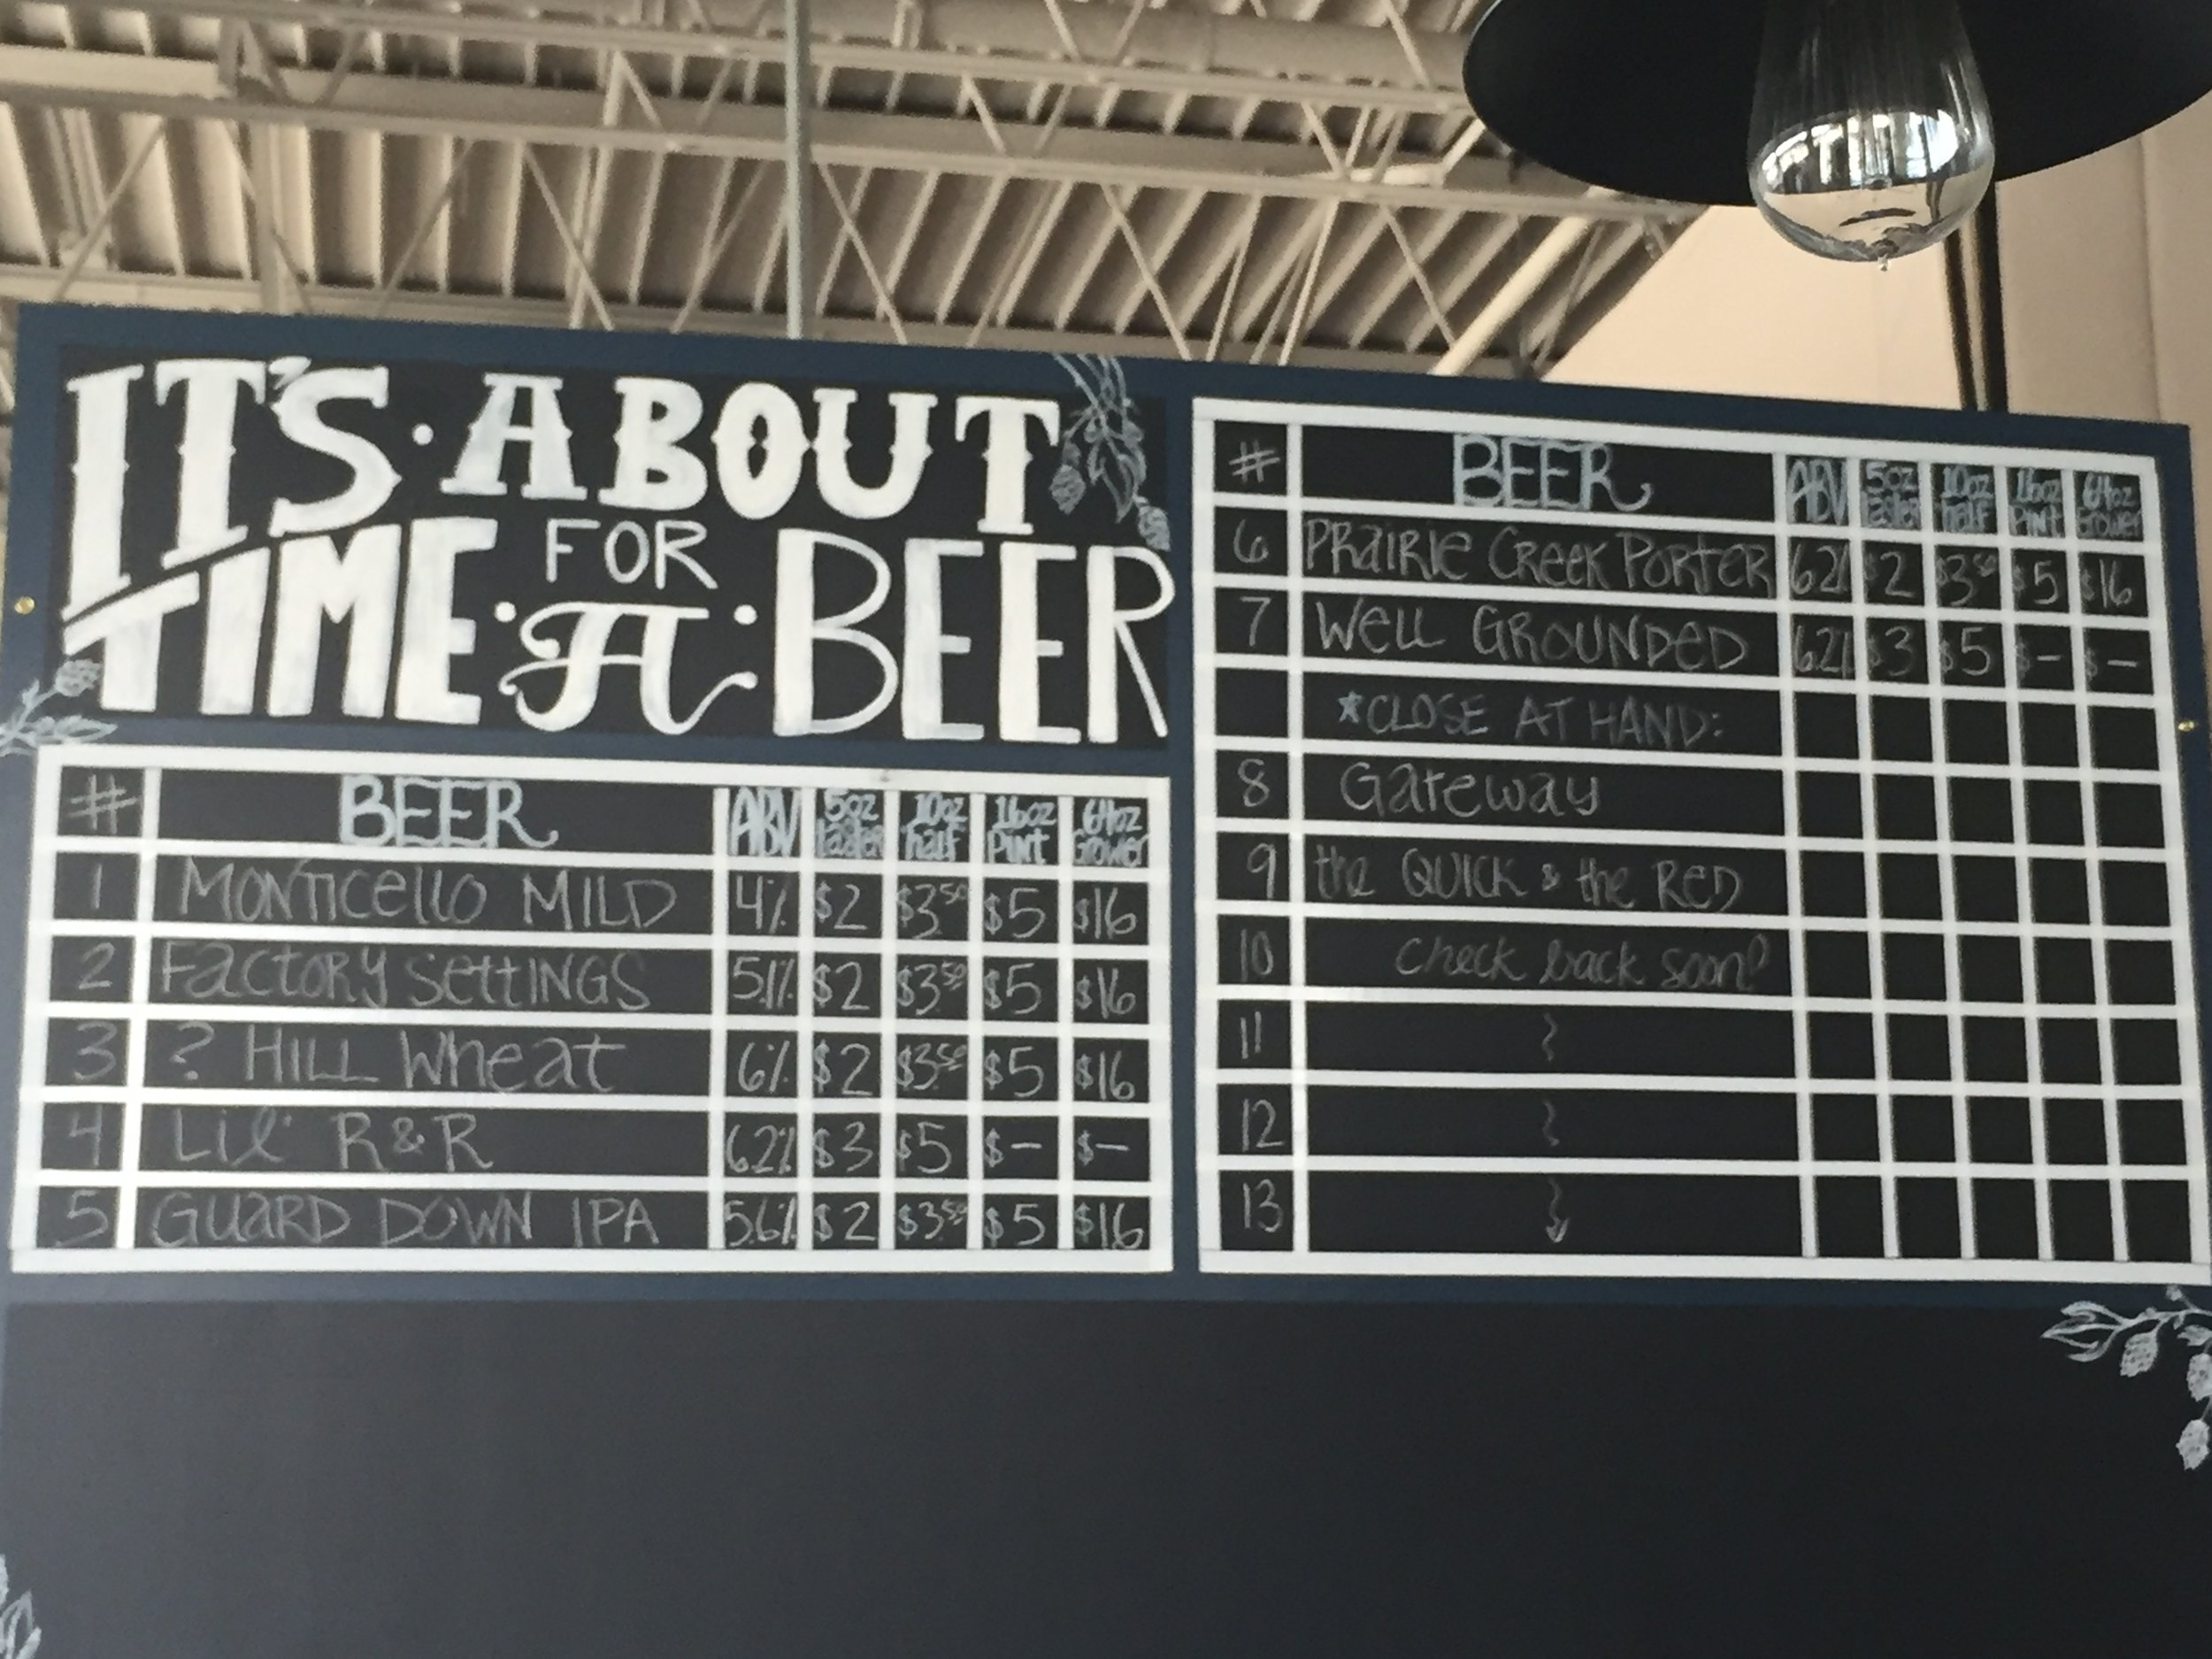 First official beer list